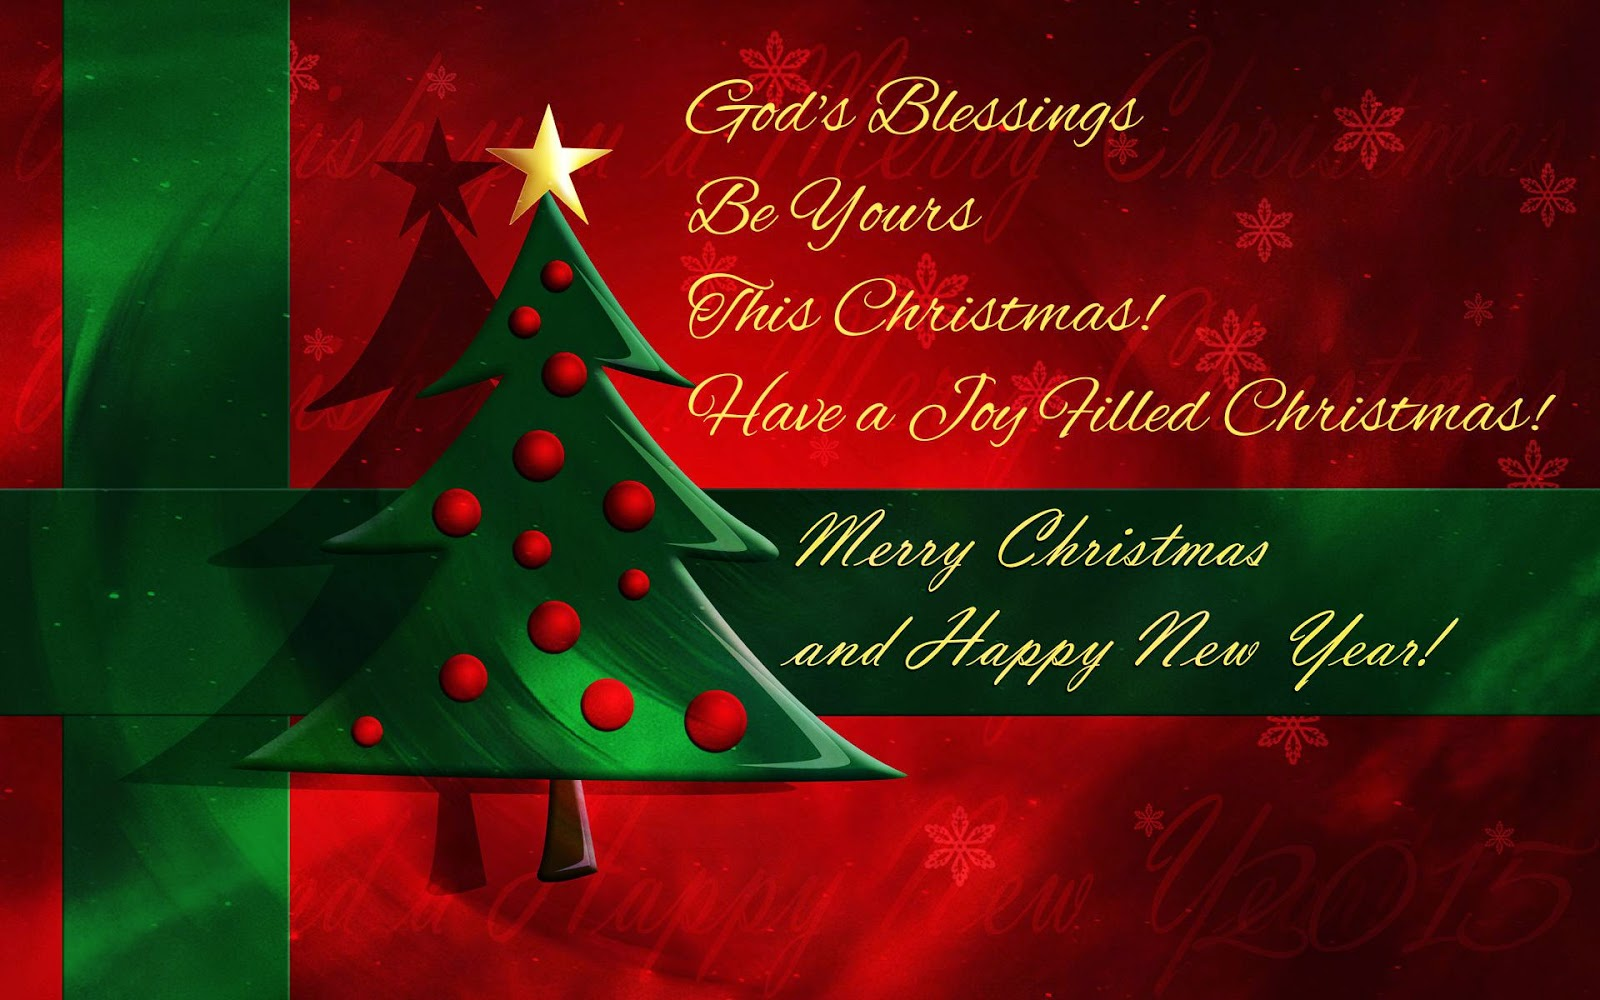 Merry christmas best wishes quotes merry christmas and happy new never kristyandbryce Image collections